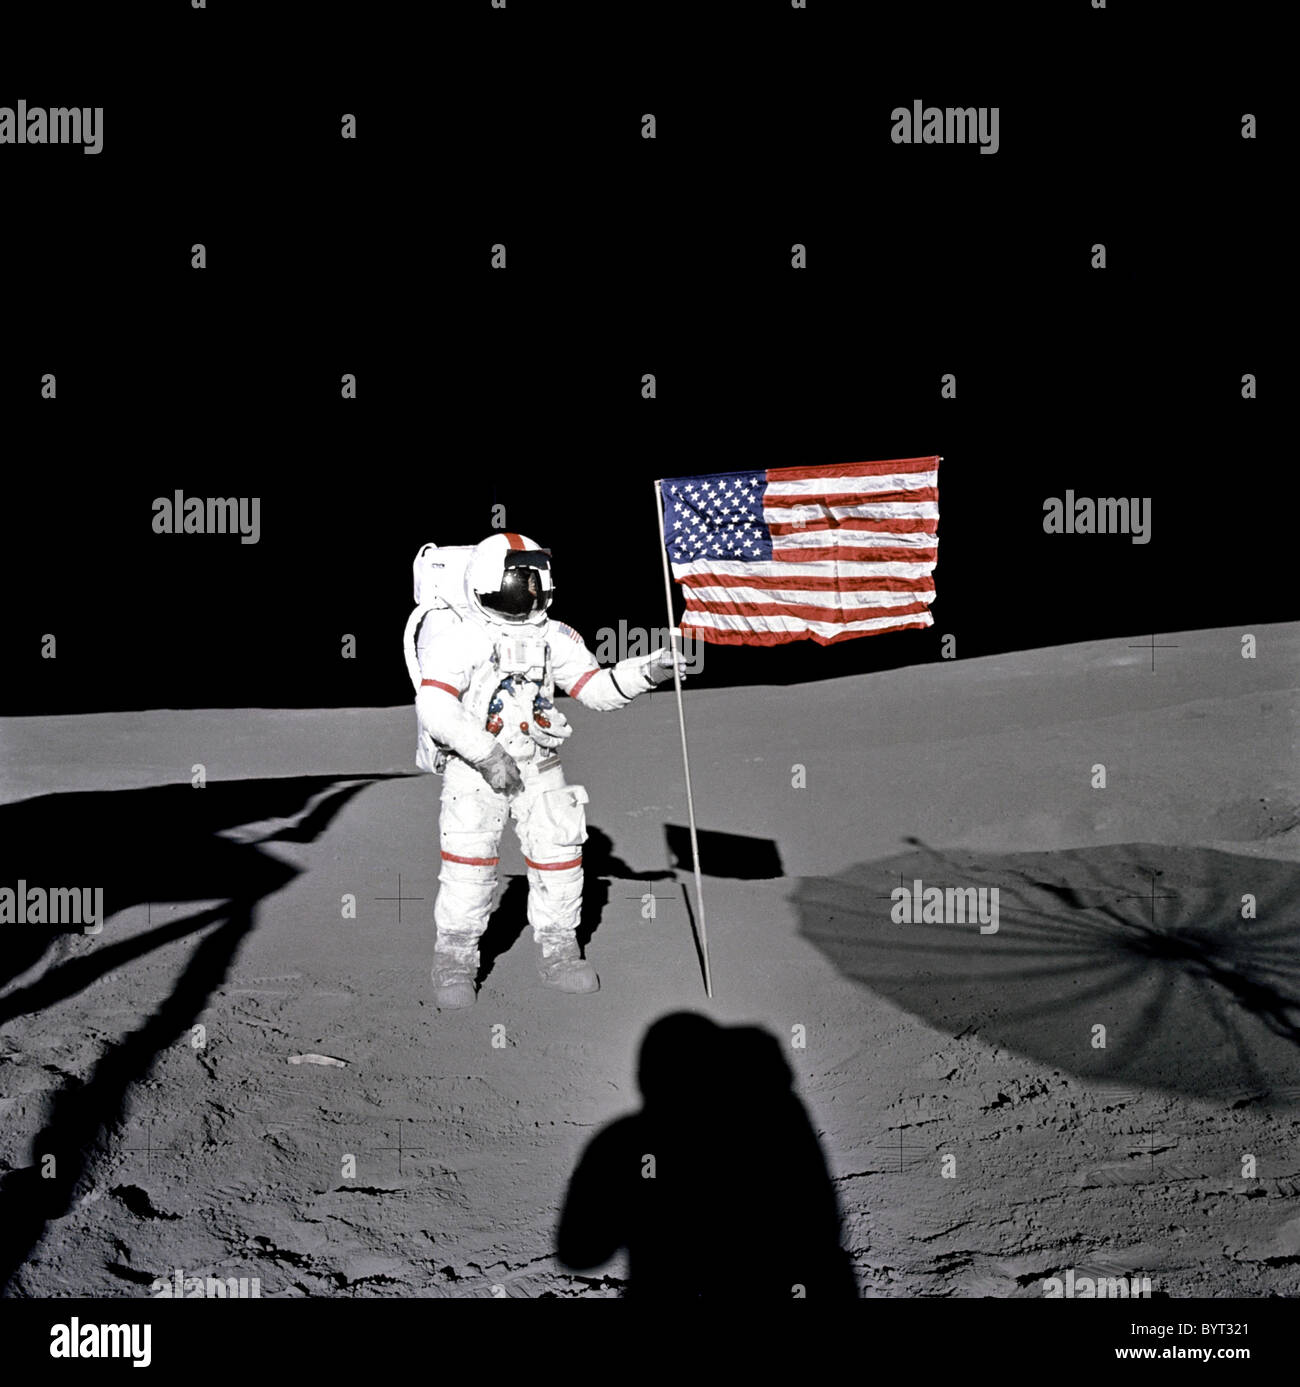 Apollo 14 L'astronaute Alan B. Shepard se distingue par le drapeau américain sur la lune. Photo Stock